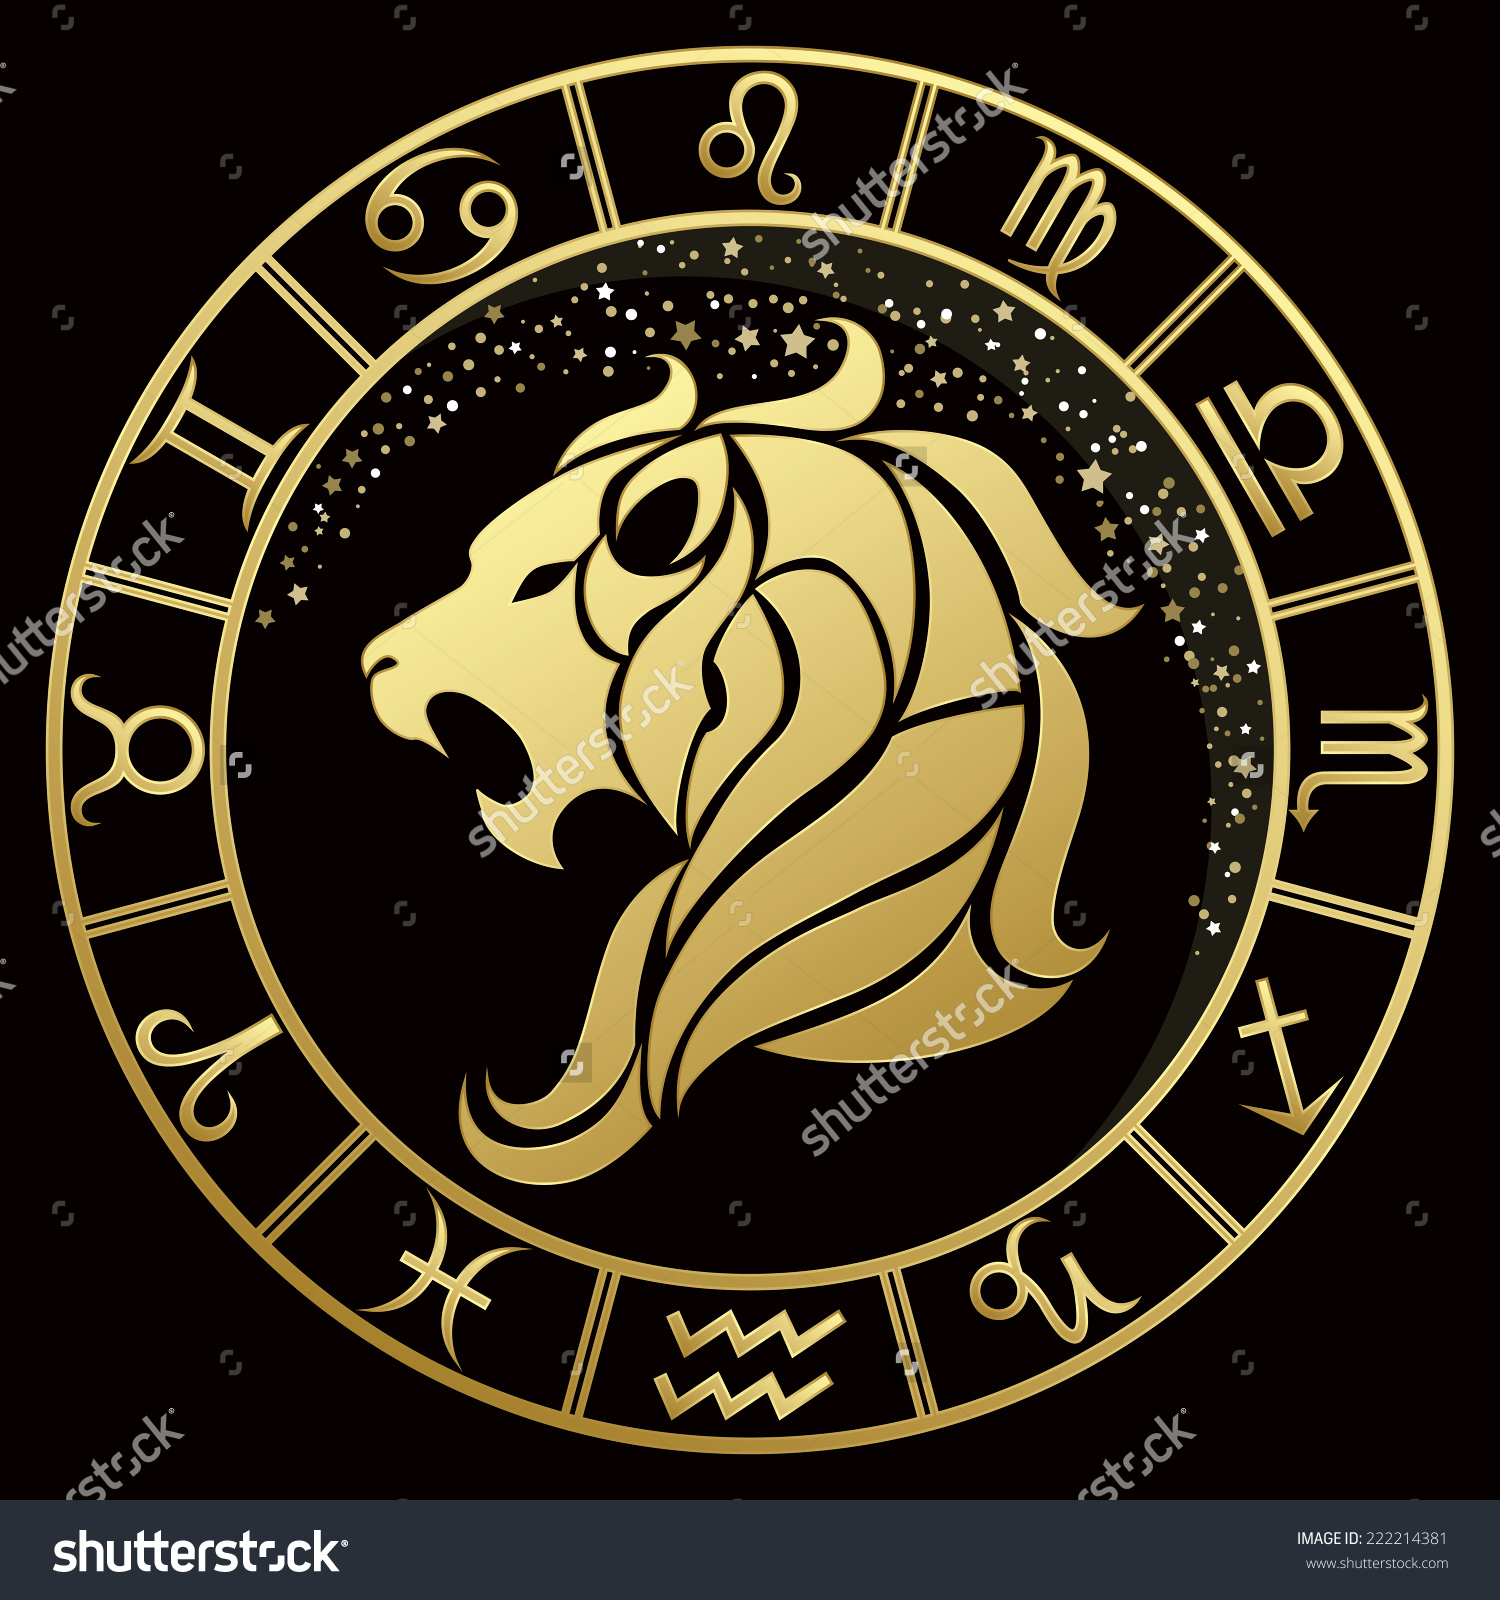 What is the zodiac